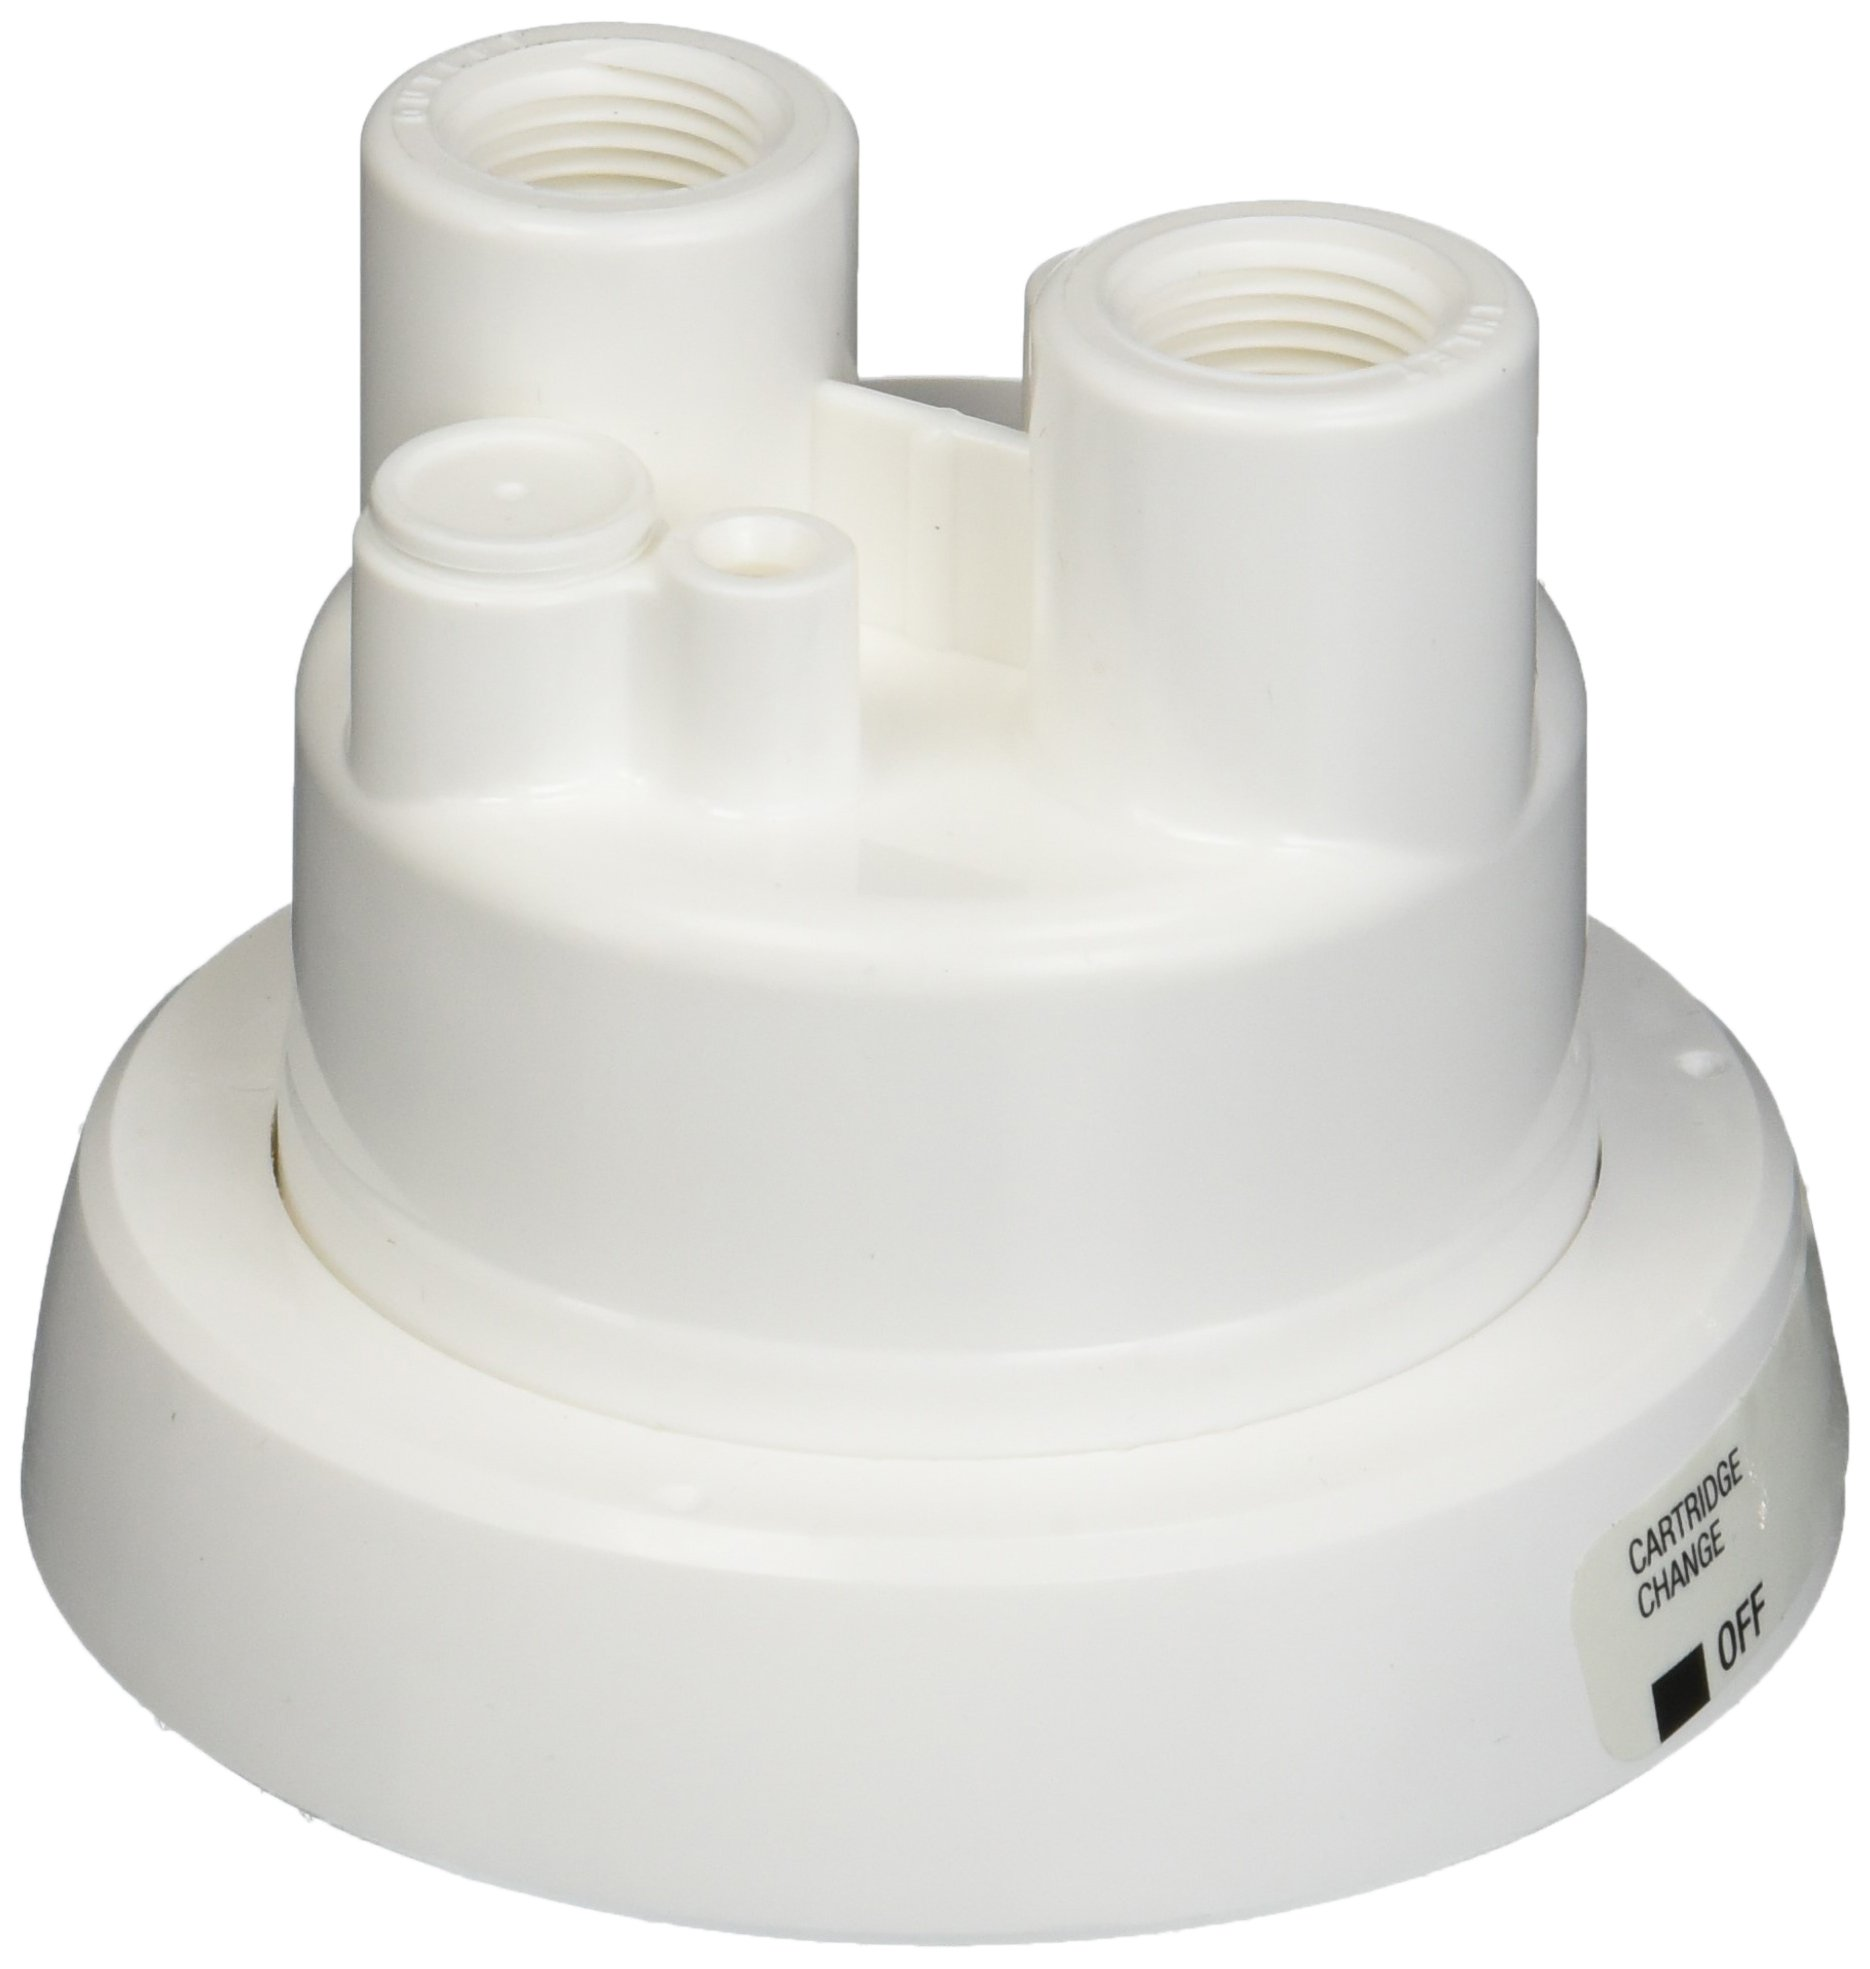 Head #68567-02 Replacement Faucet Mount Water Filters by AquaPure